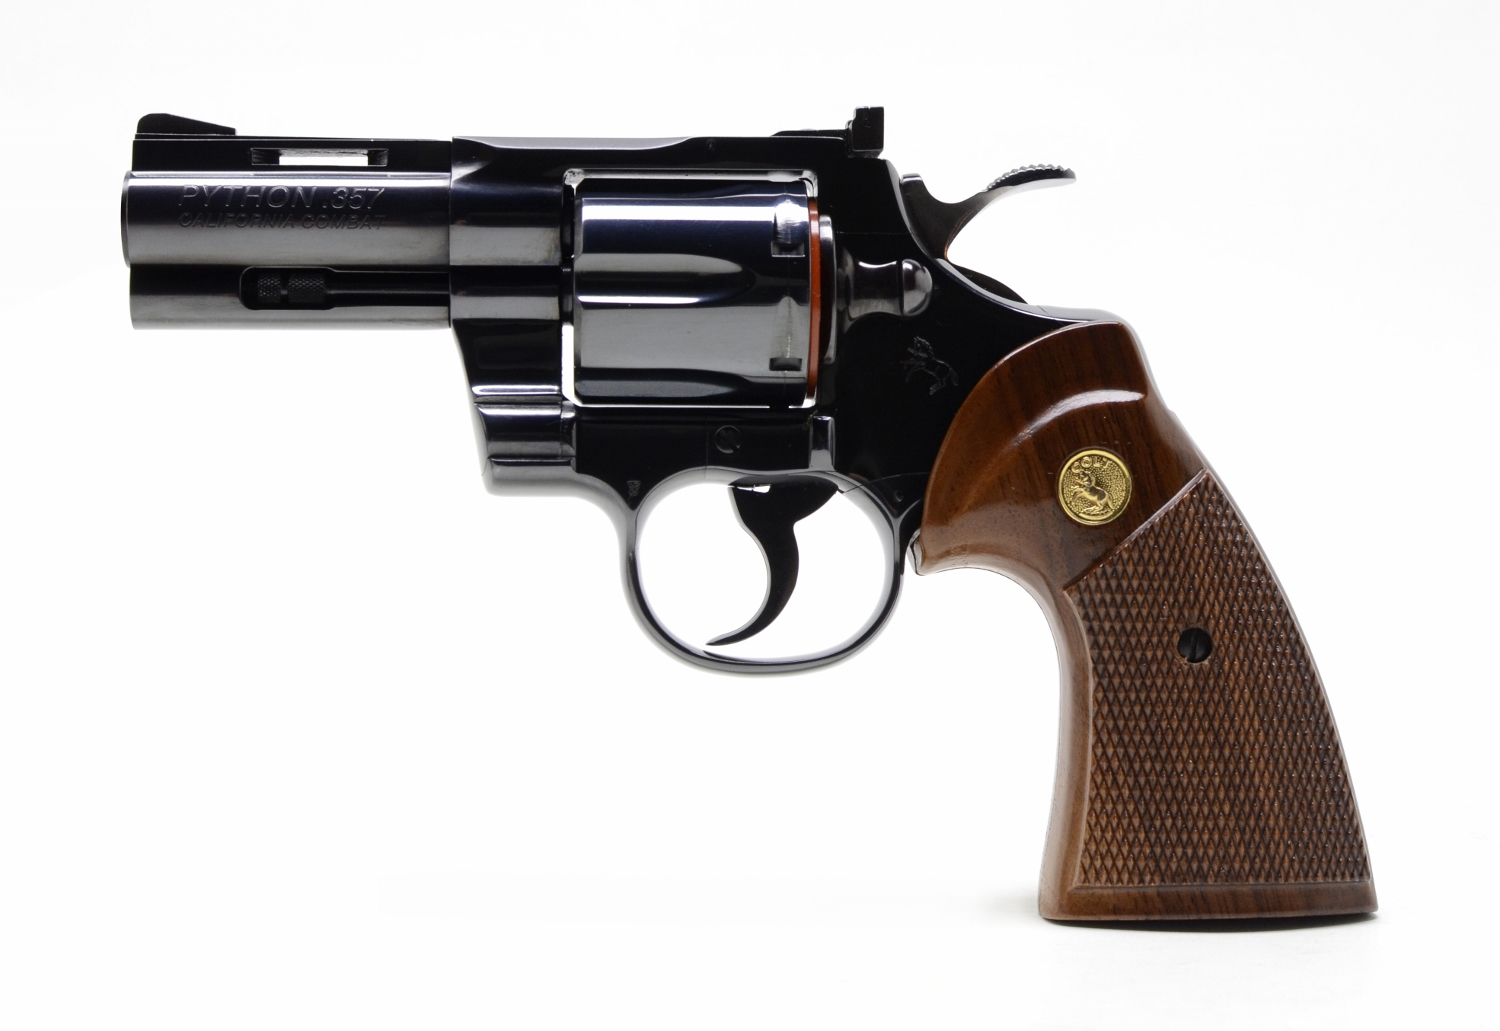 Combat Python colt python 357 mag. 3 inch. like new in factory box. california